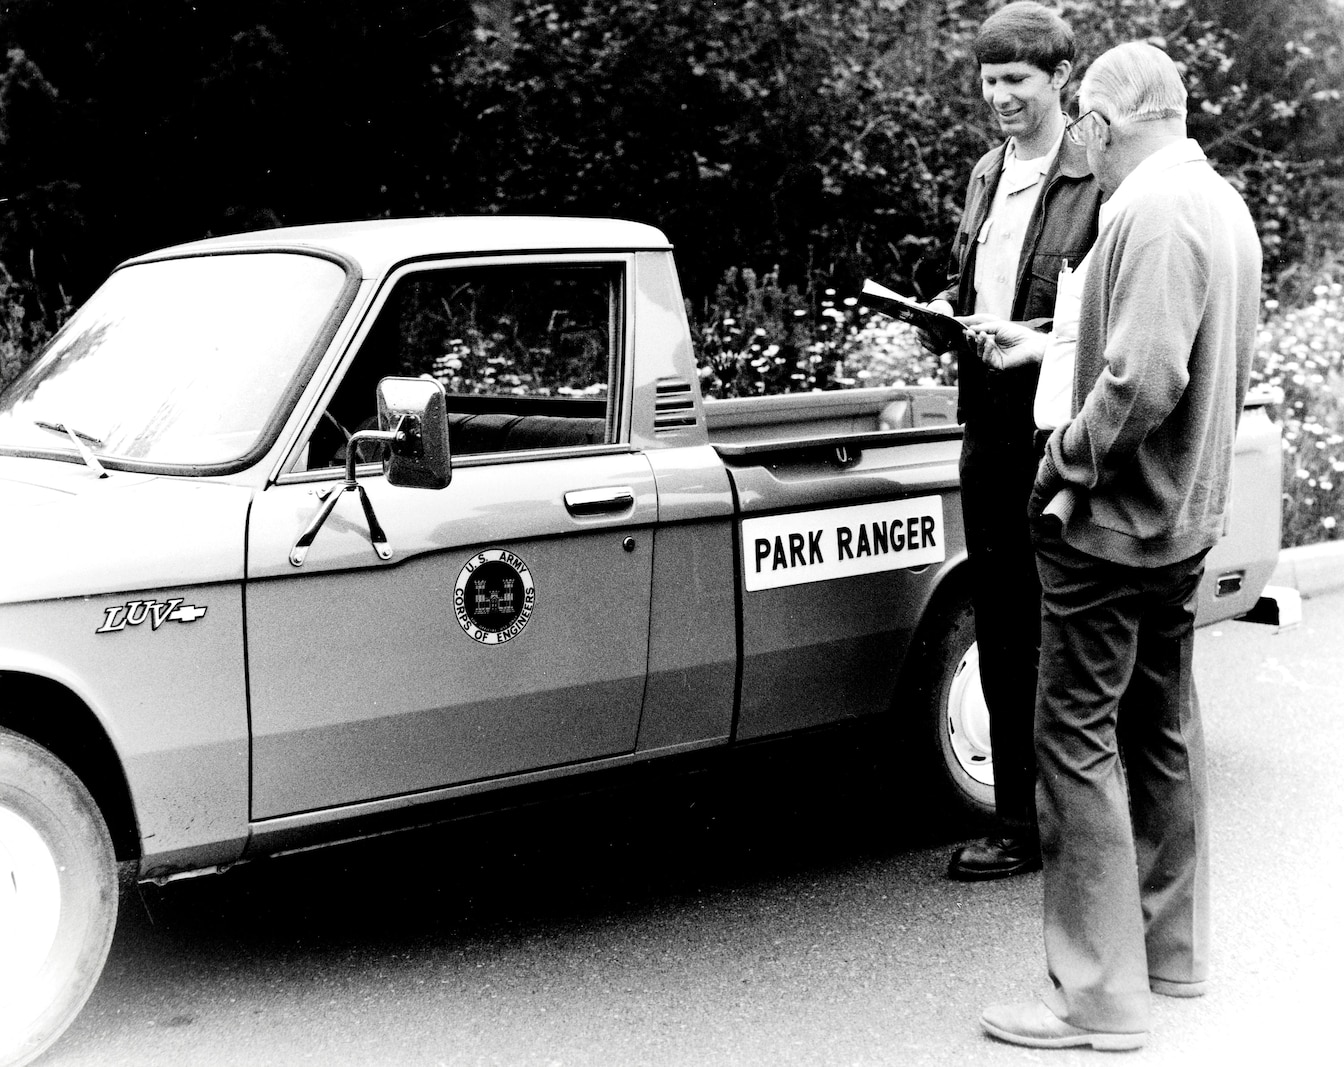 A park ranger and a visitor stand outside a small pickup truck with the Corps logo and park ranger decals